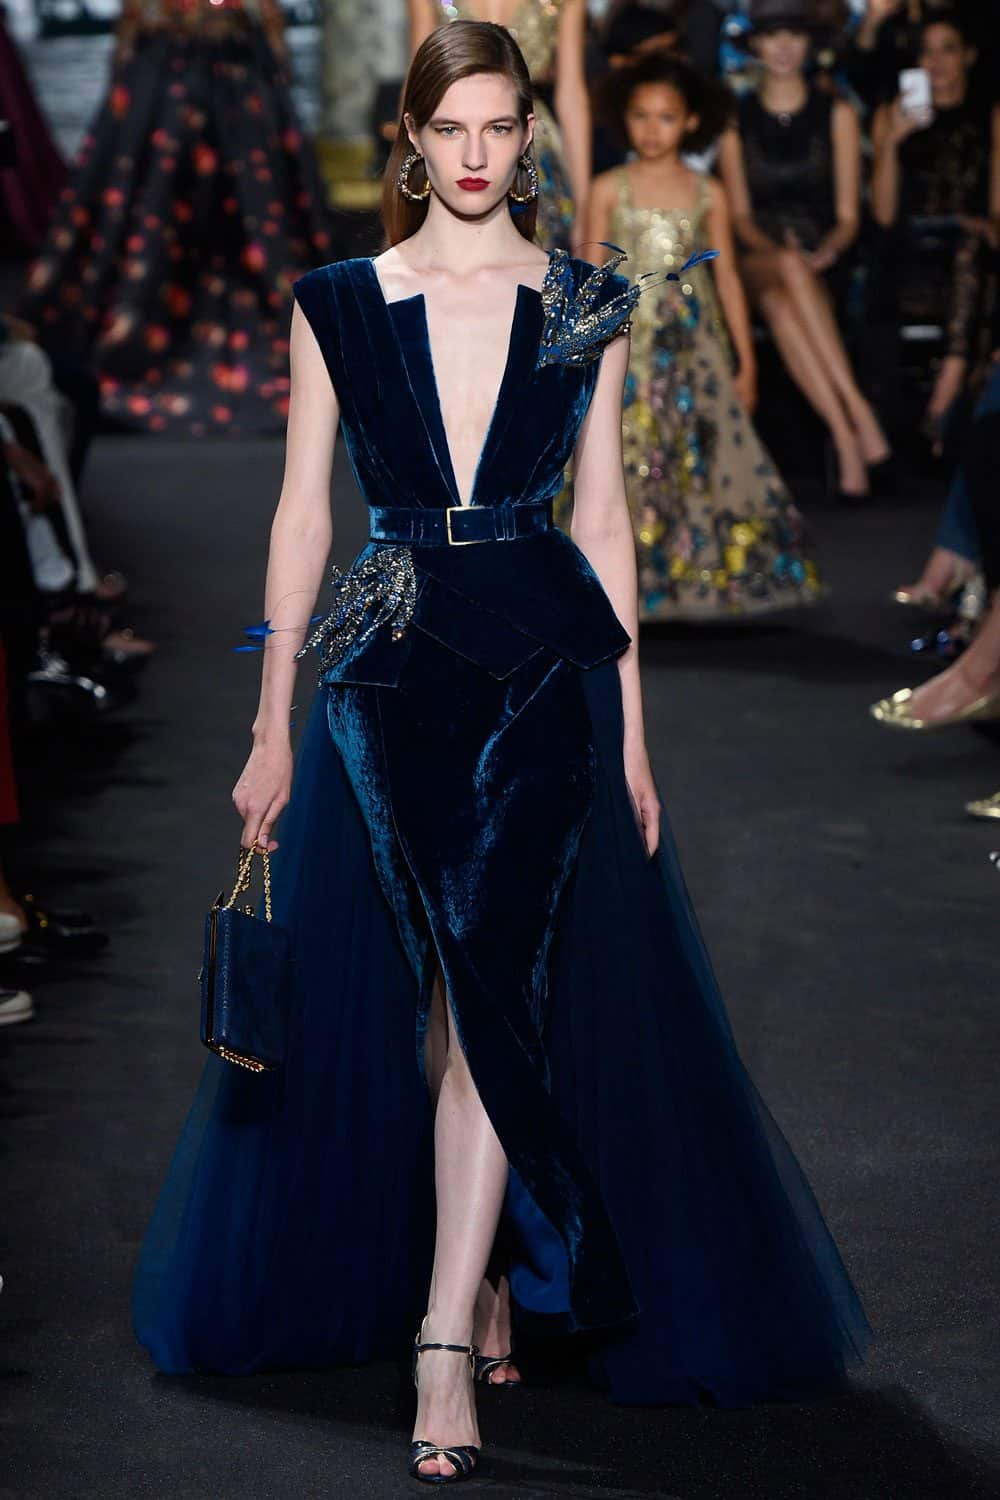 elie-saab-Photo-Kim-Weston-Arnold.-Indigital.tv30